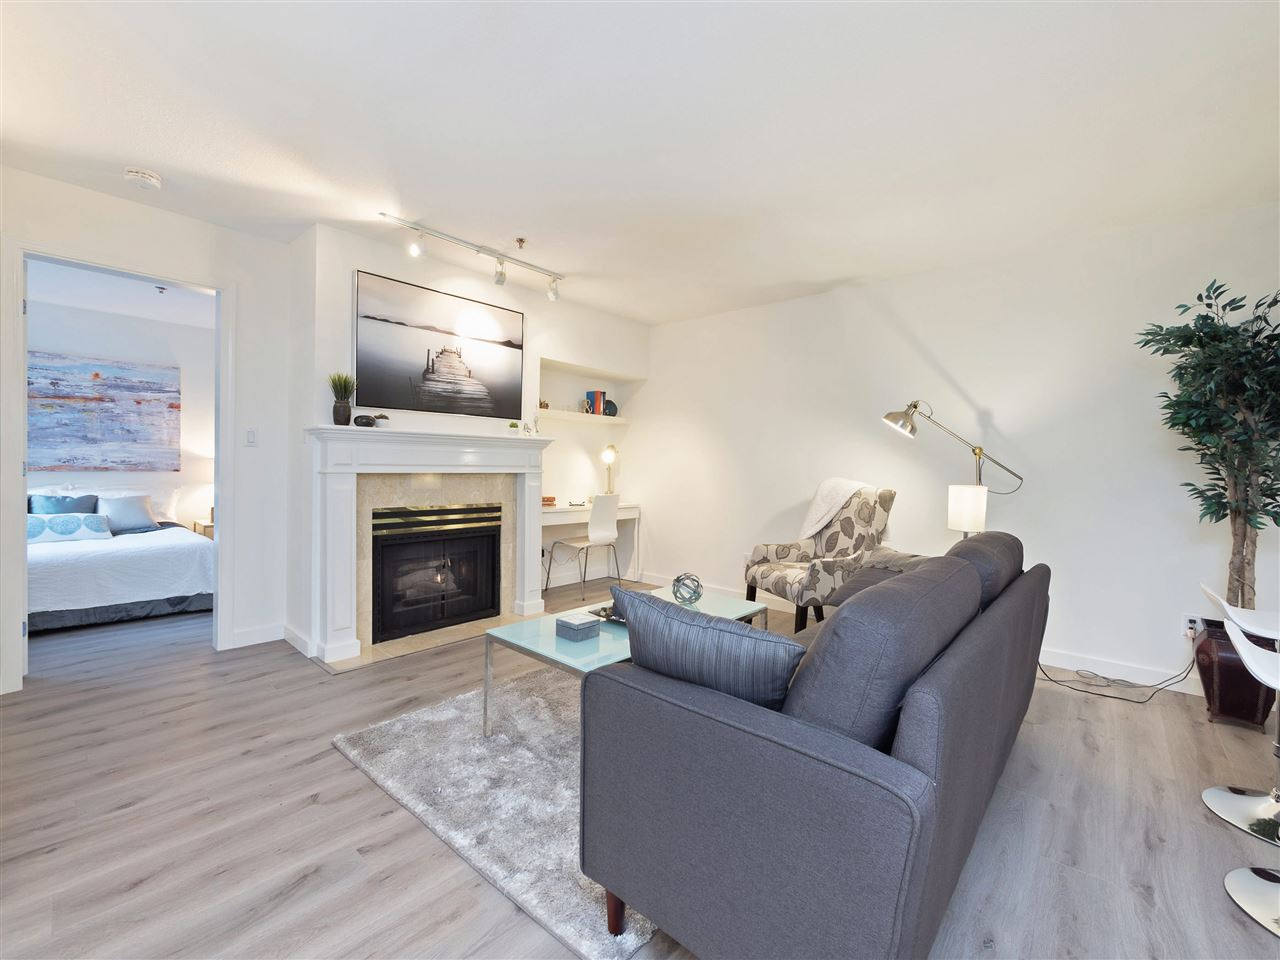 Condo Apartment at 211 1148 WESTWOOD STREET, Unit 211, Coquitlam, British Columbia. Image 7